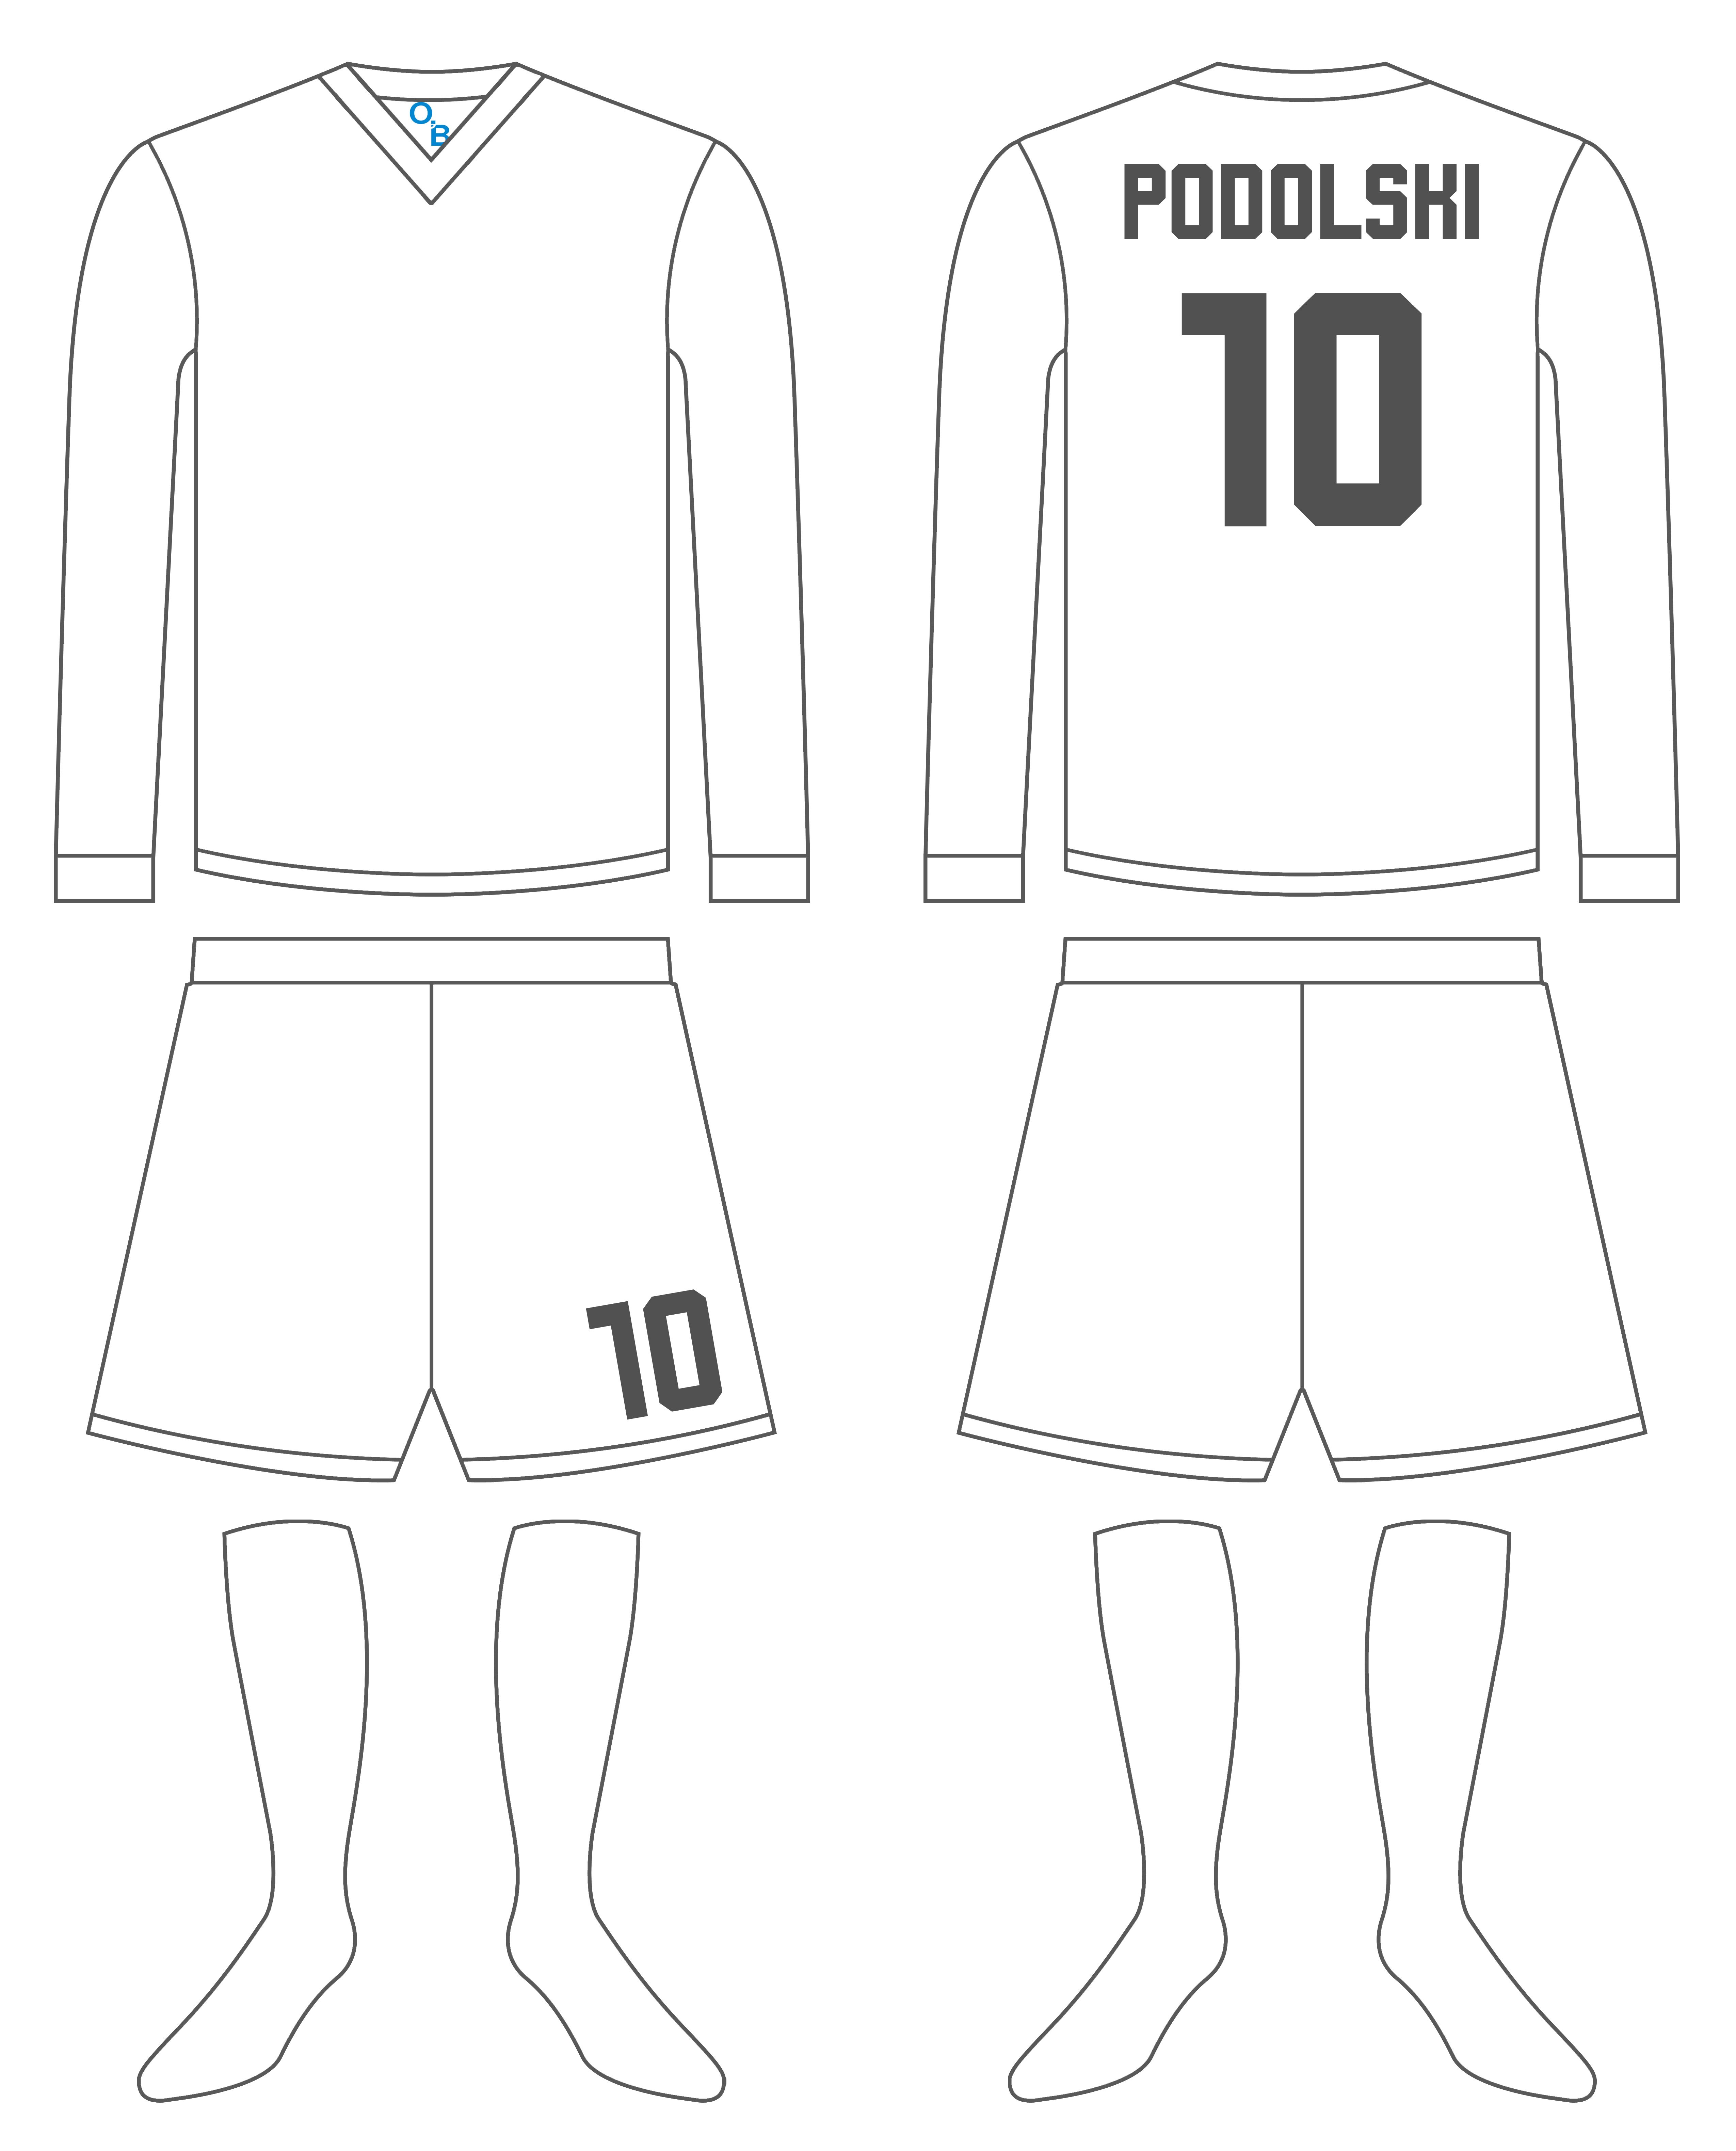 Soccer Kit Template 2 by TimeOBrien.deviantart.com on